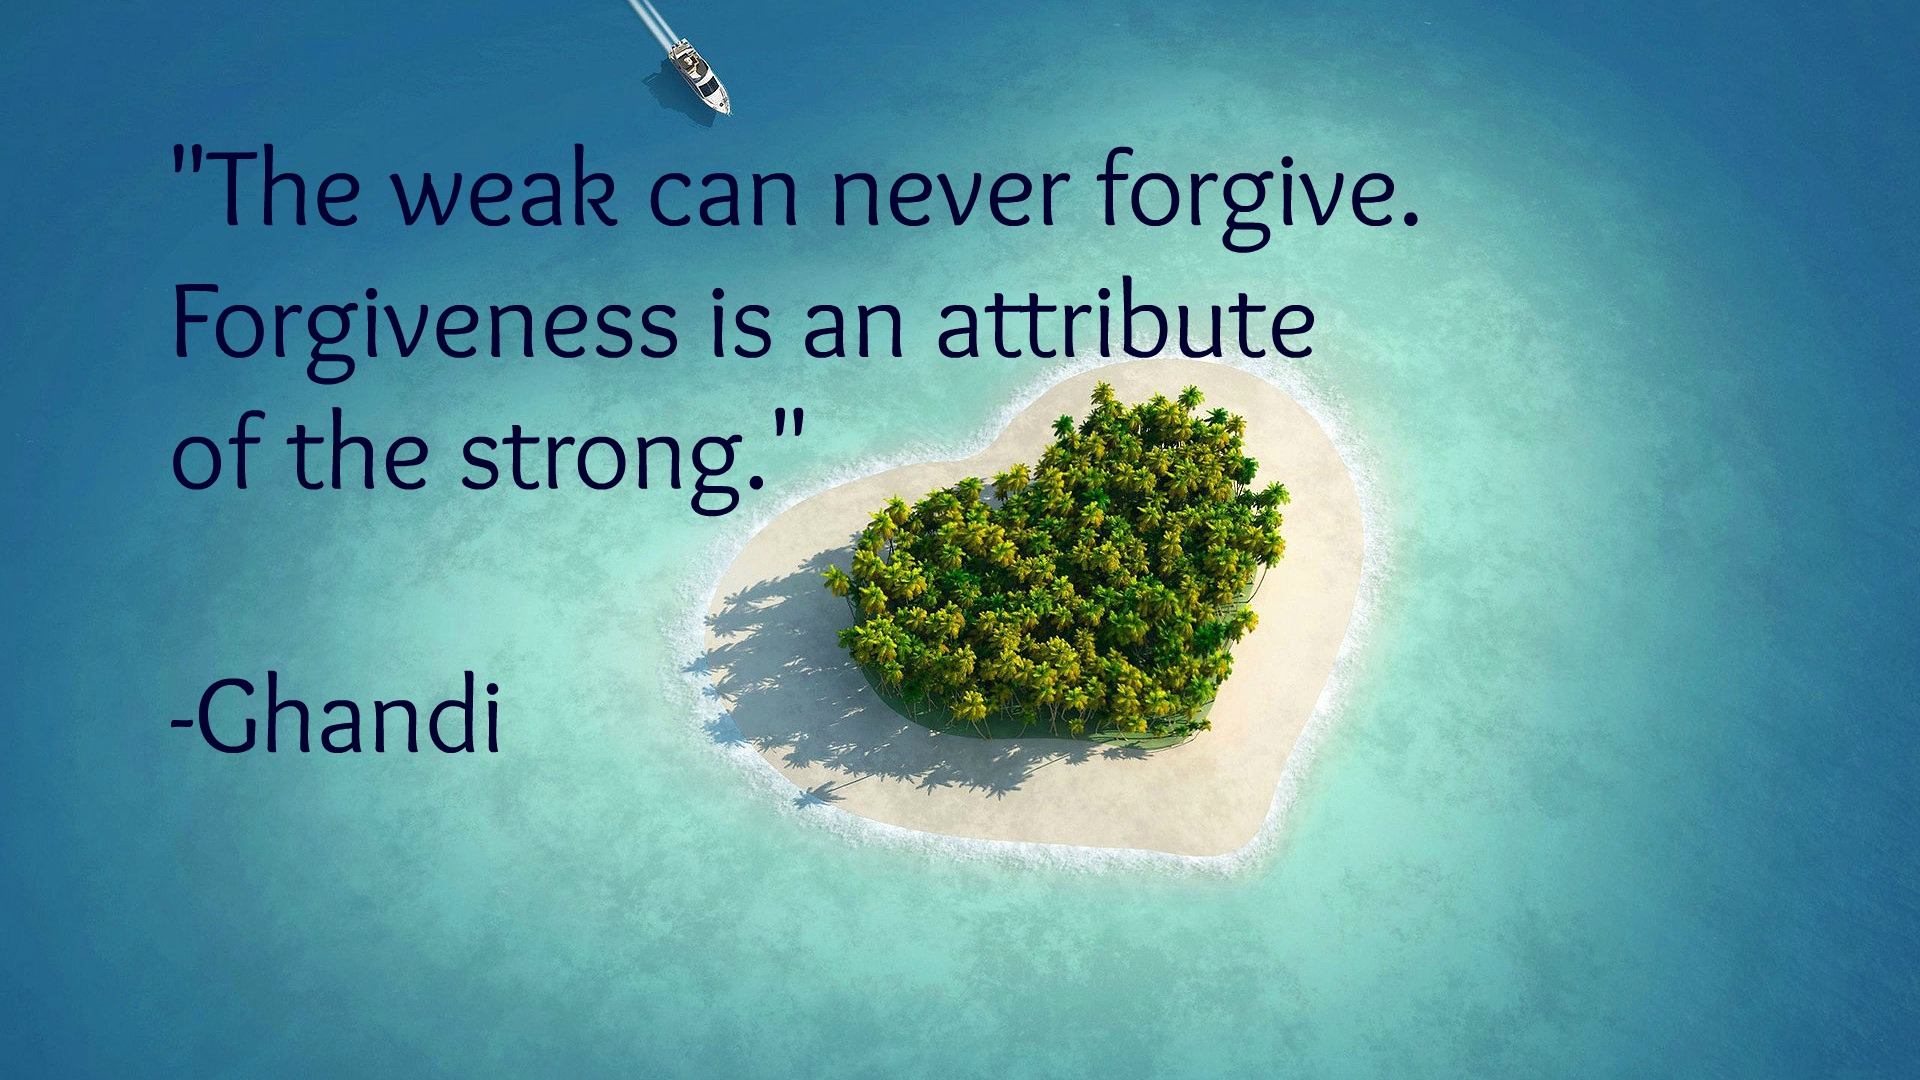 forgiveness is the attribute of the strong essay Mahatma gandhi the weak can never forgive forgiveness is the attribute of the strong.